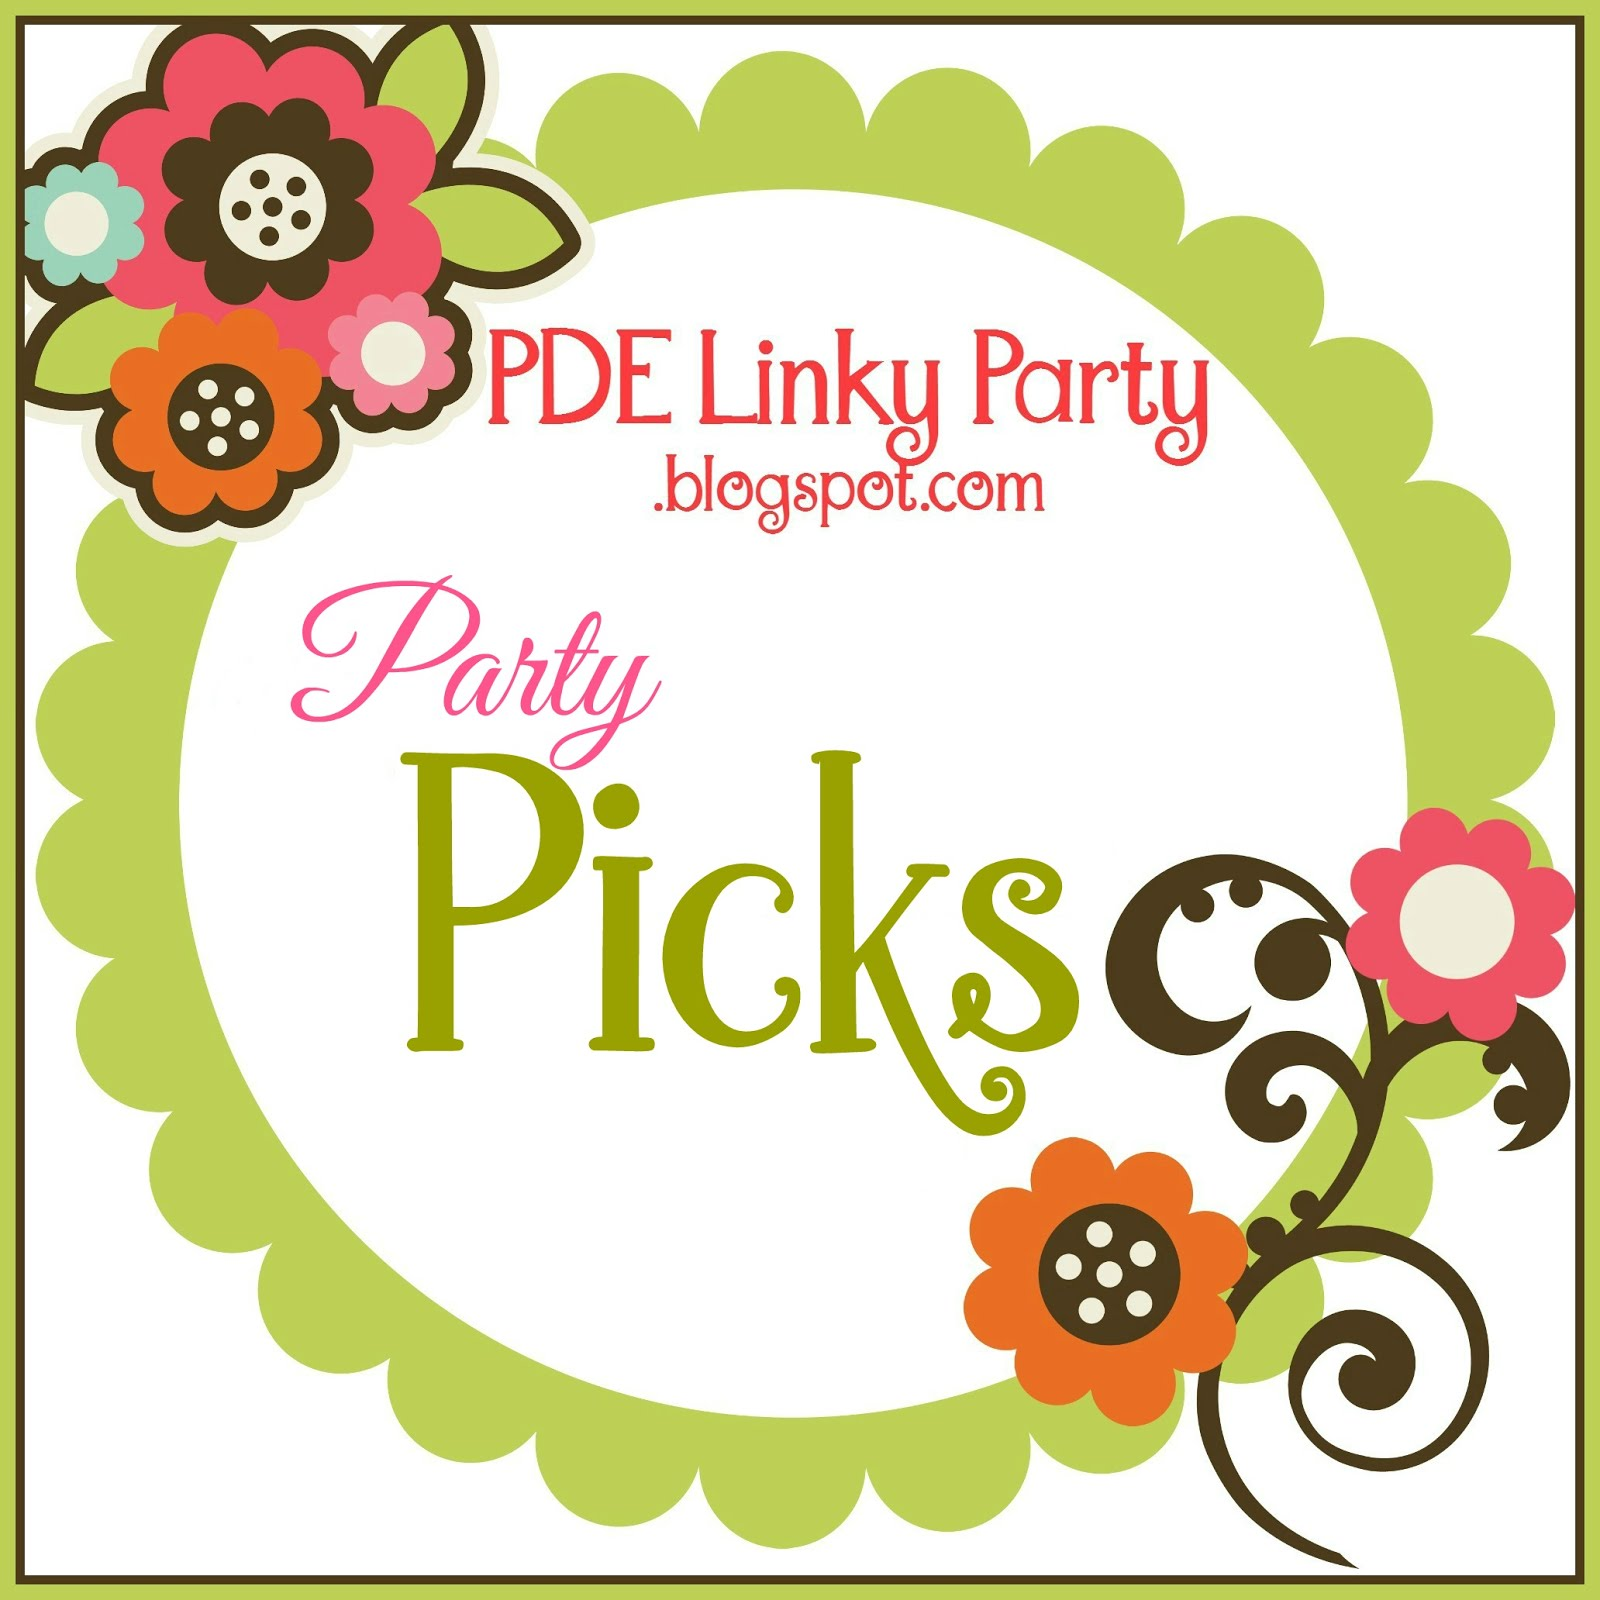 PDE Linky Party - Winner|Party Picks - Challenge 113 - Anything Goes - 4 March 2016